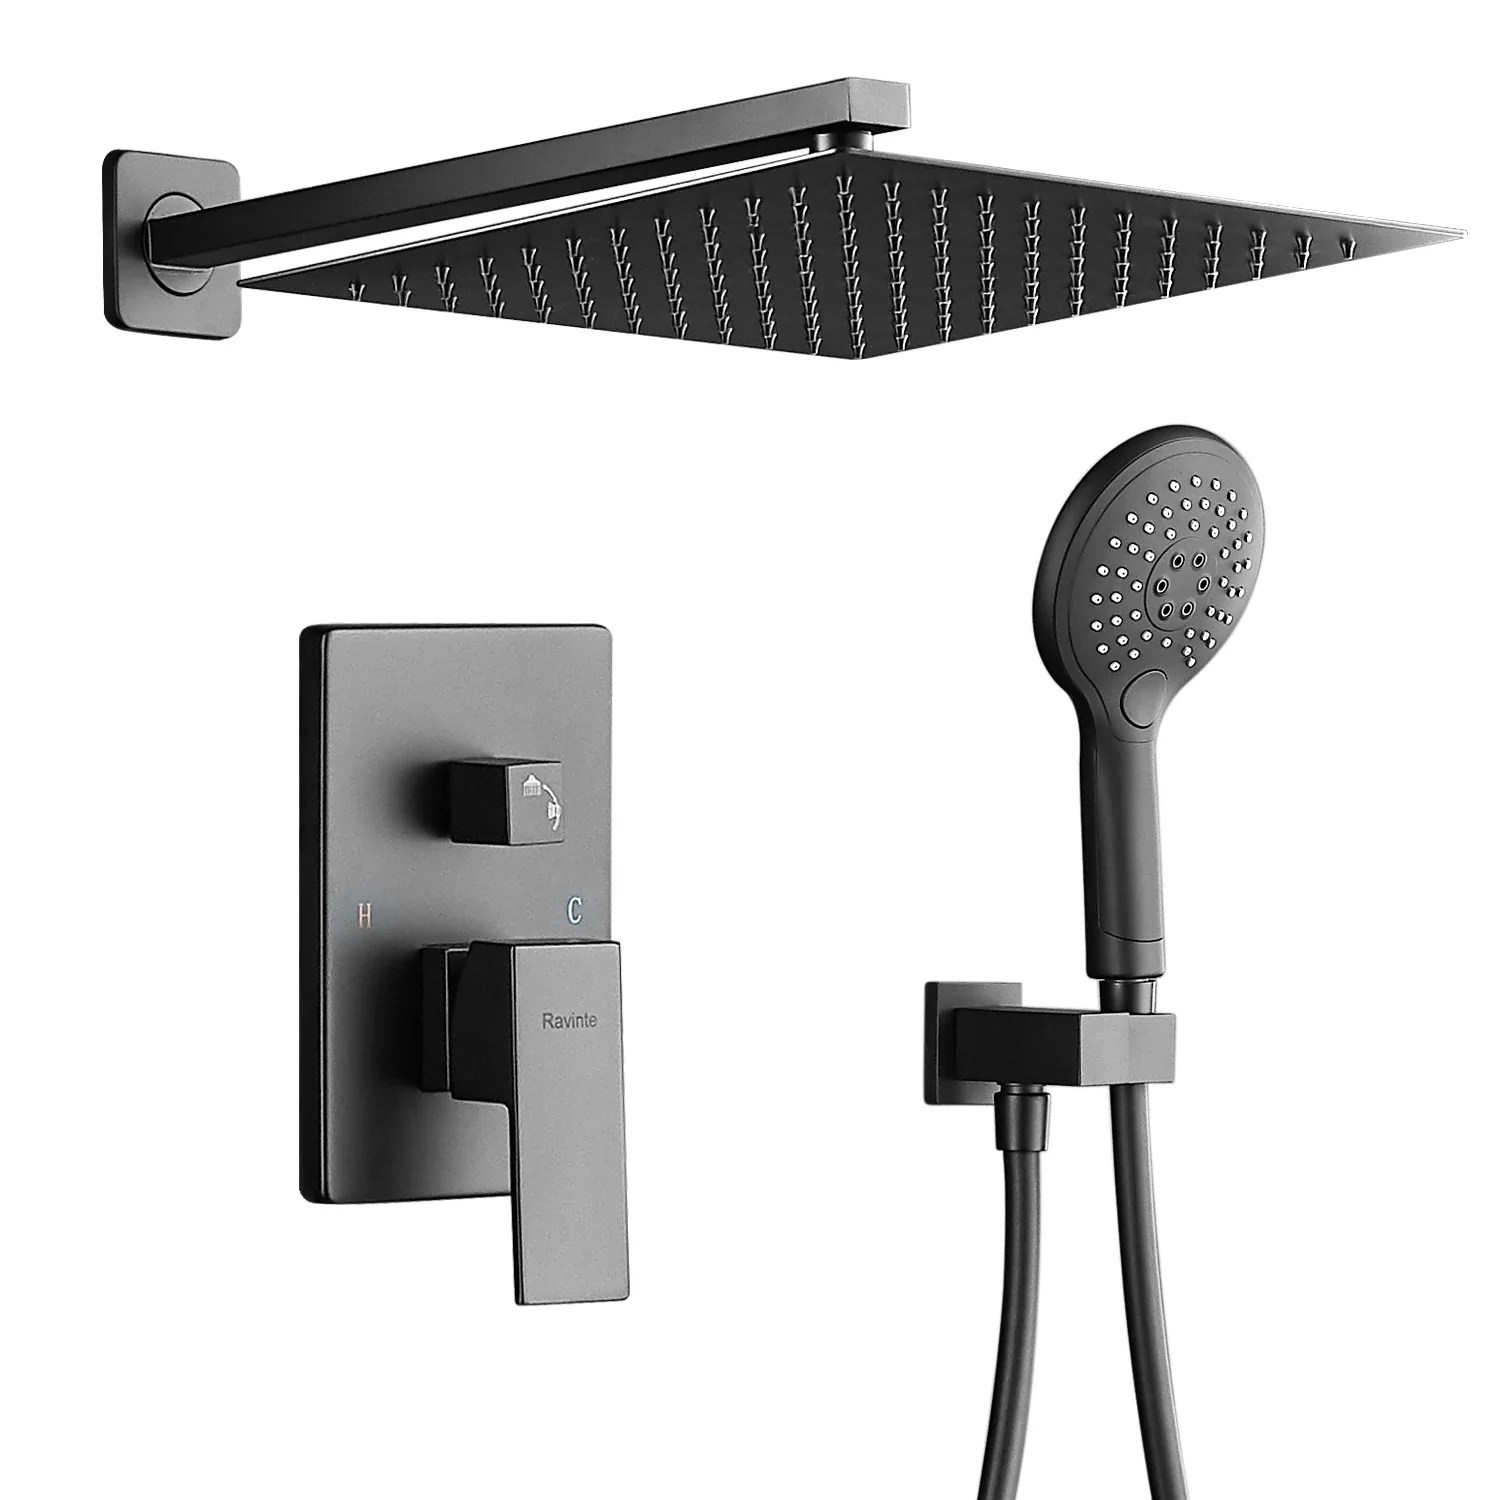 rain shower system modern shower faucet set with rough in valve 12 rainfall shower head and multi function hand held luxury shower combo set